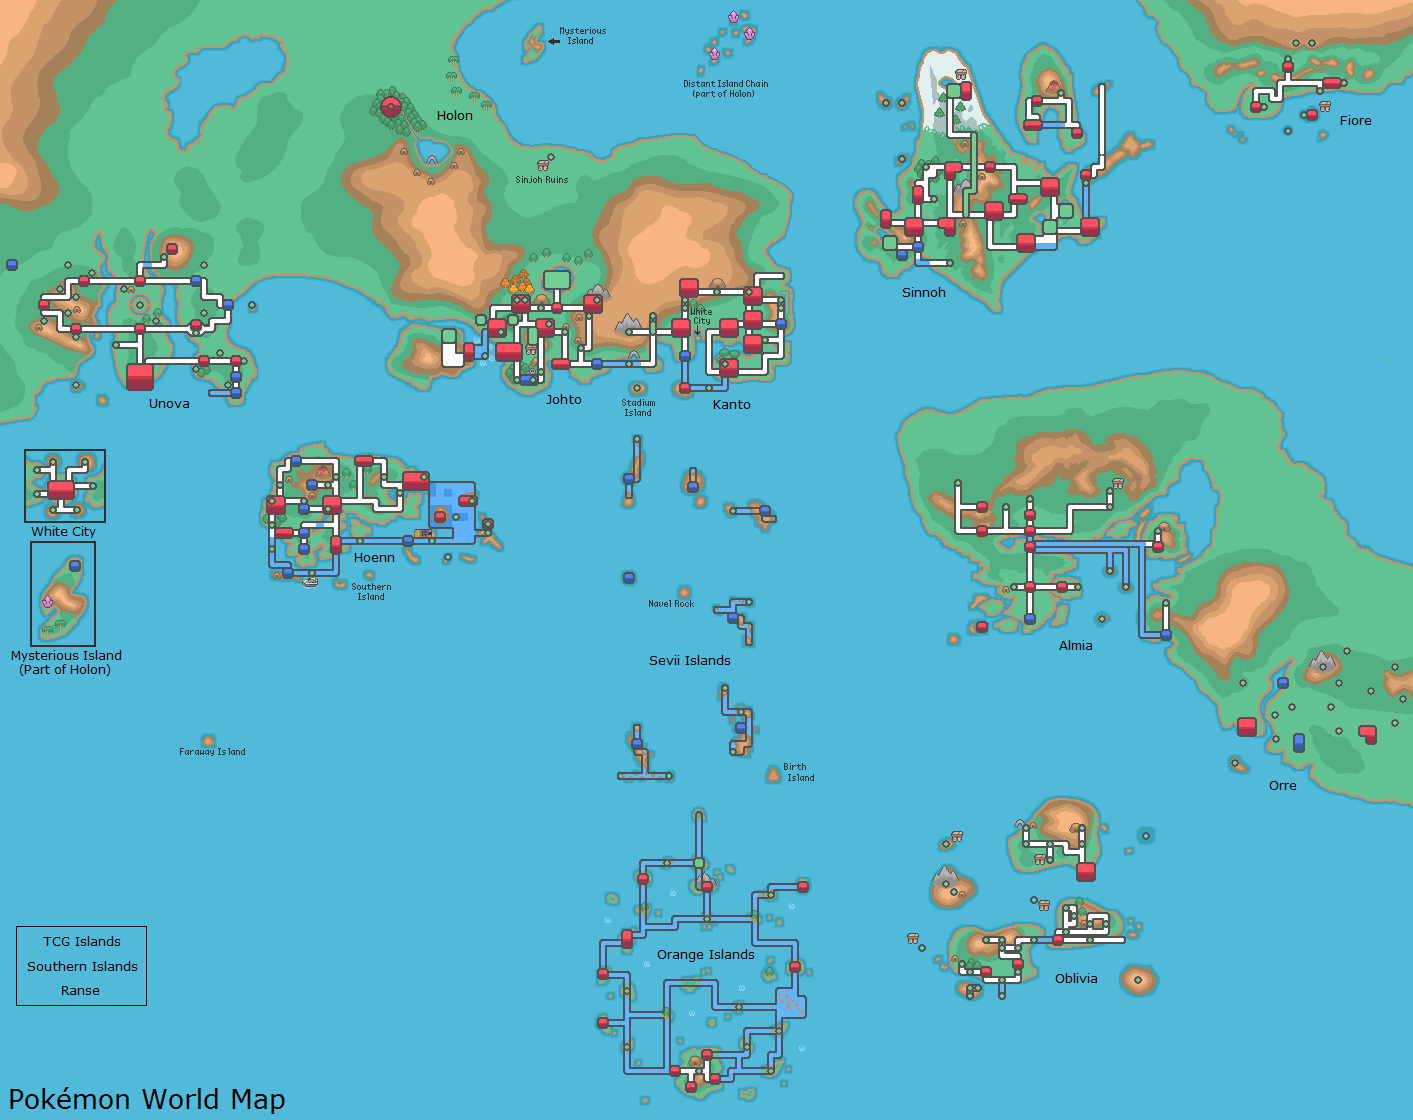 Pokemon World Map VoVatia